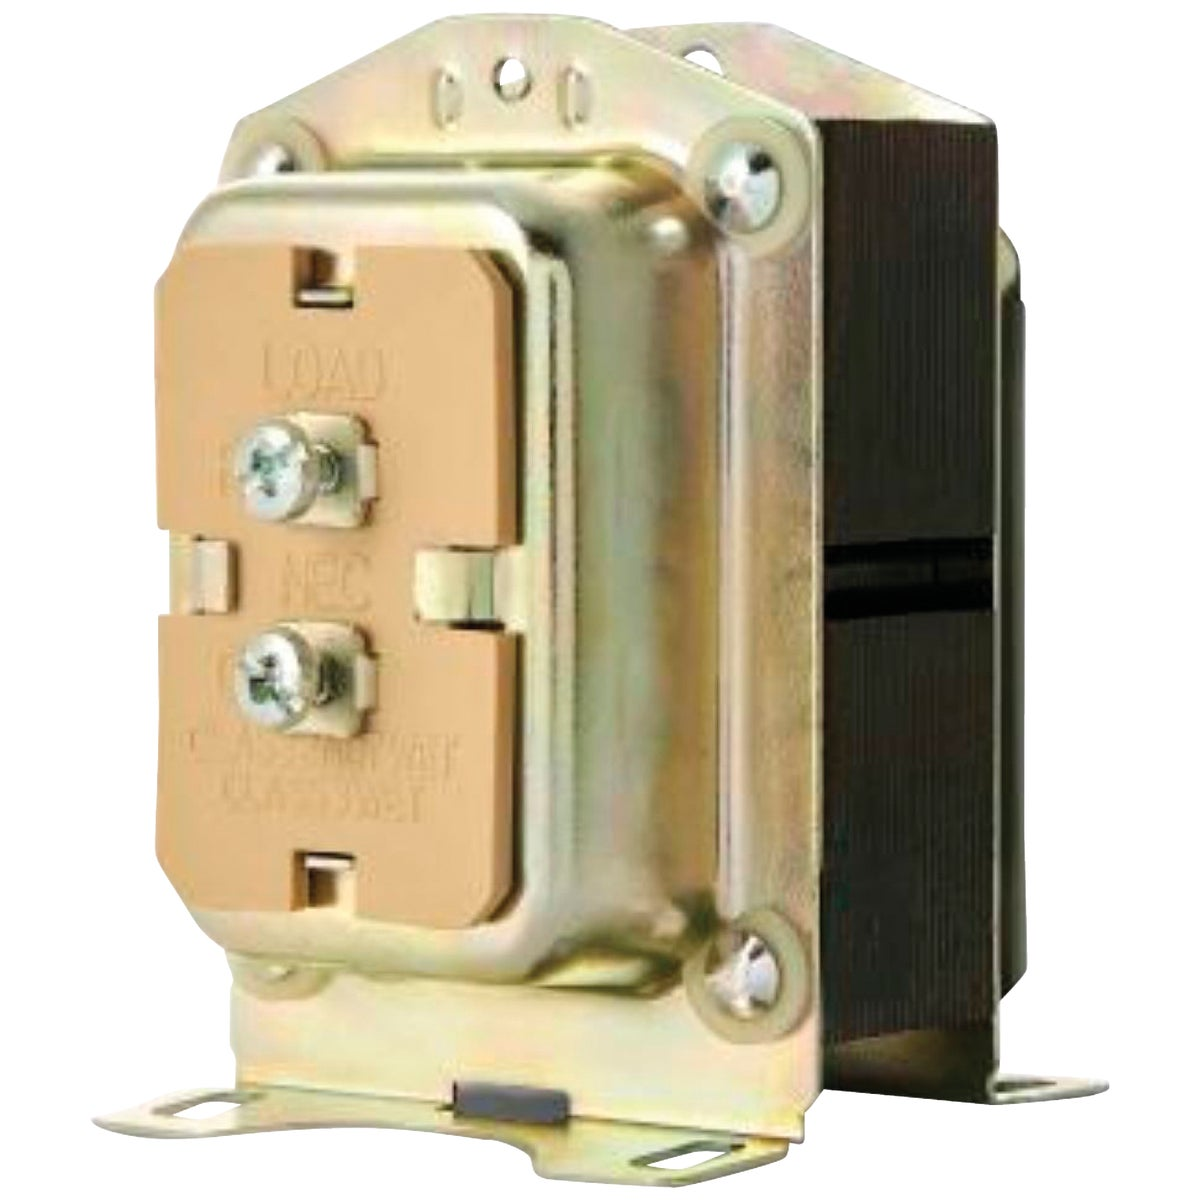 STANDARD TRANSFORMER - AT72D1683 by Honeywell Internatl